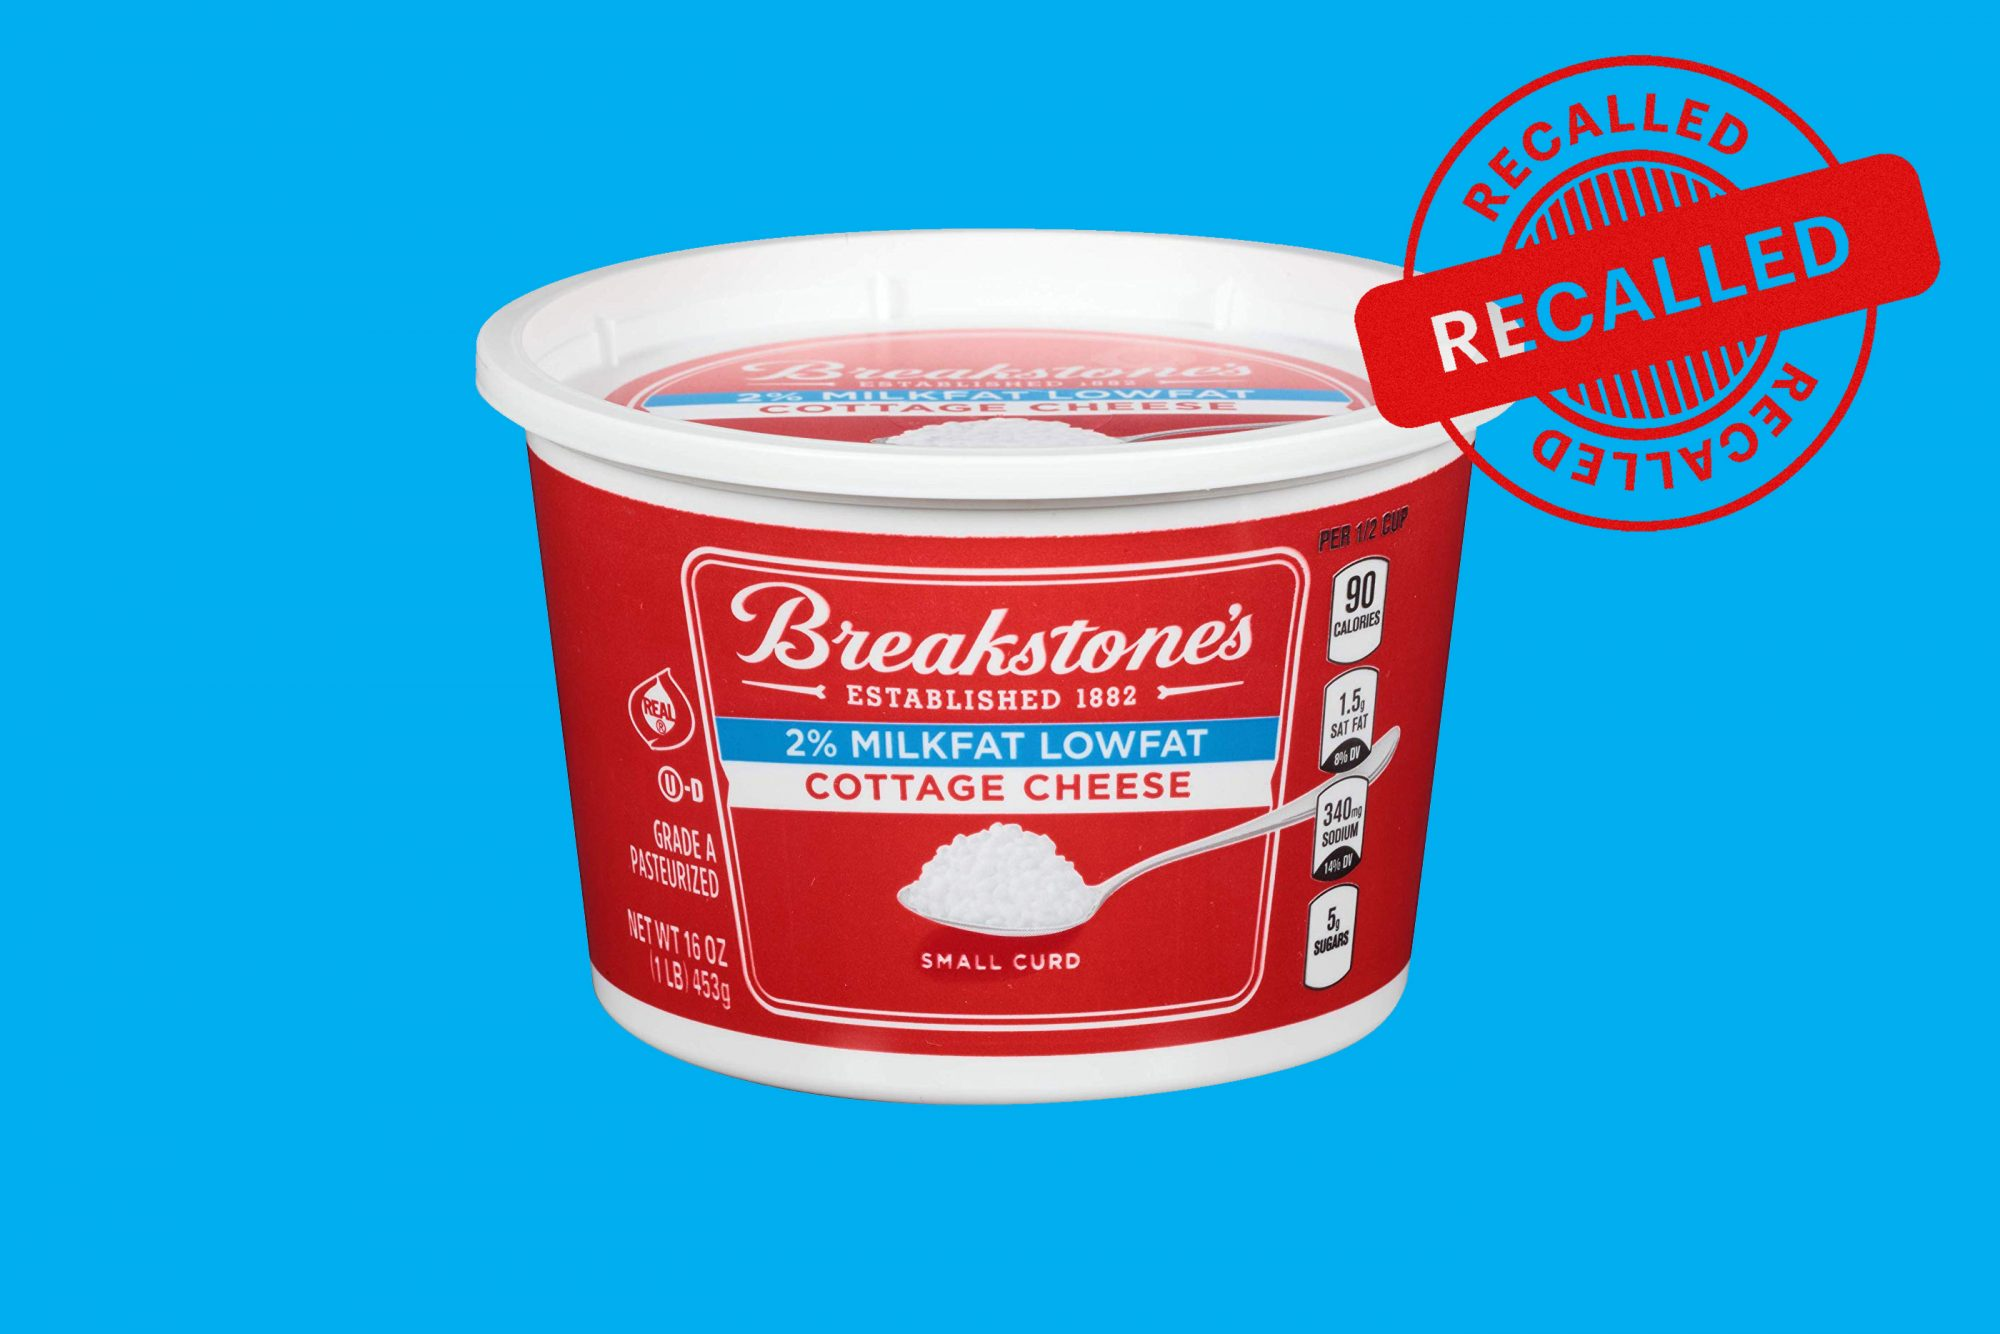 Nearly 10,000 Cases of Breakstone's Cottage Cheese Recalled for Possible Plastic and Metal Contamination